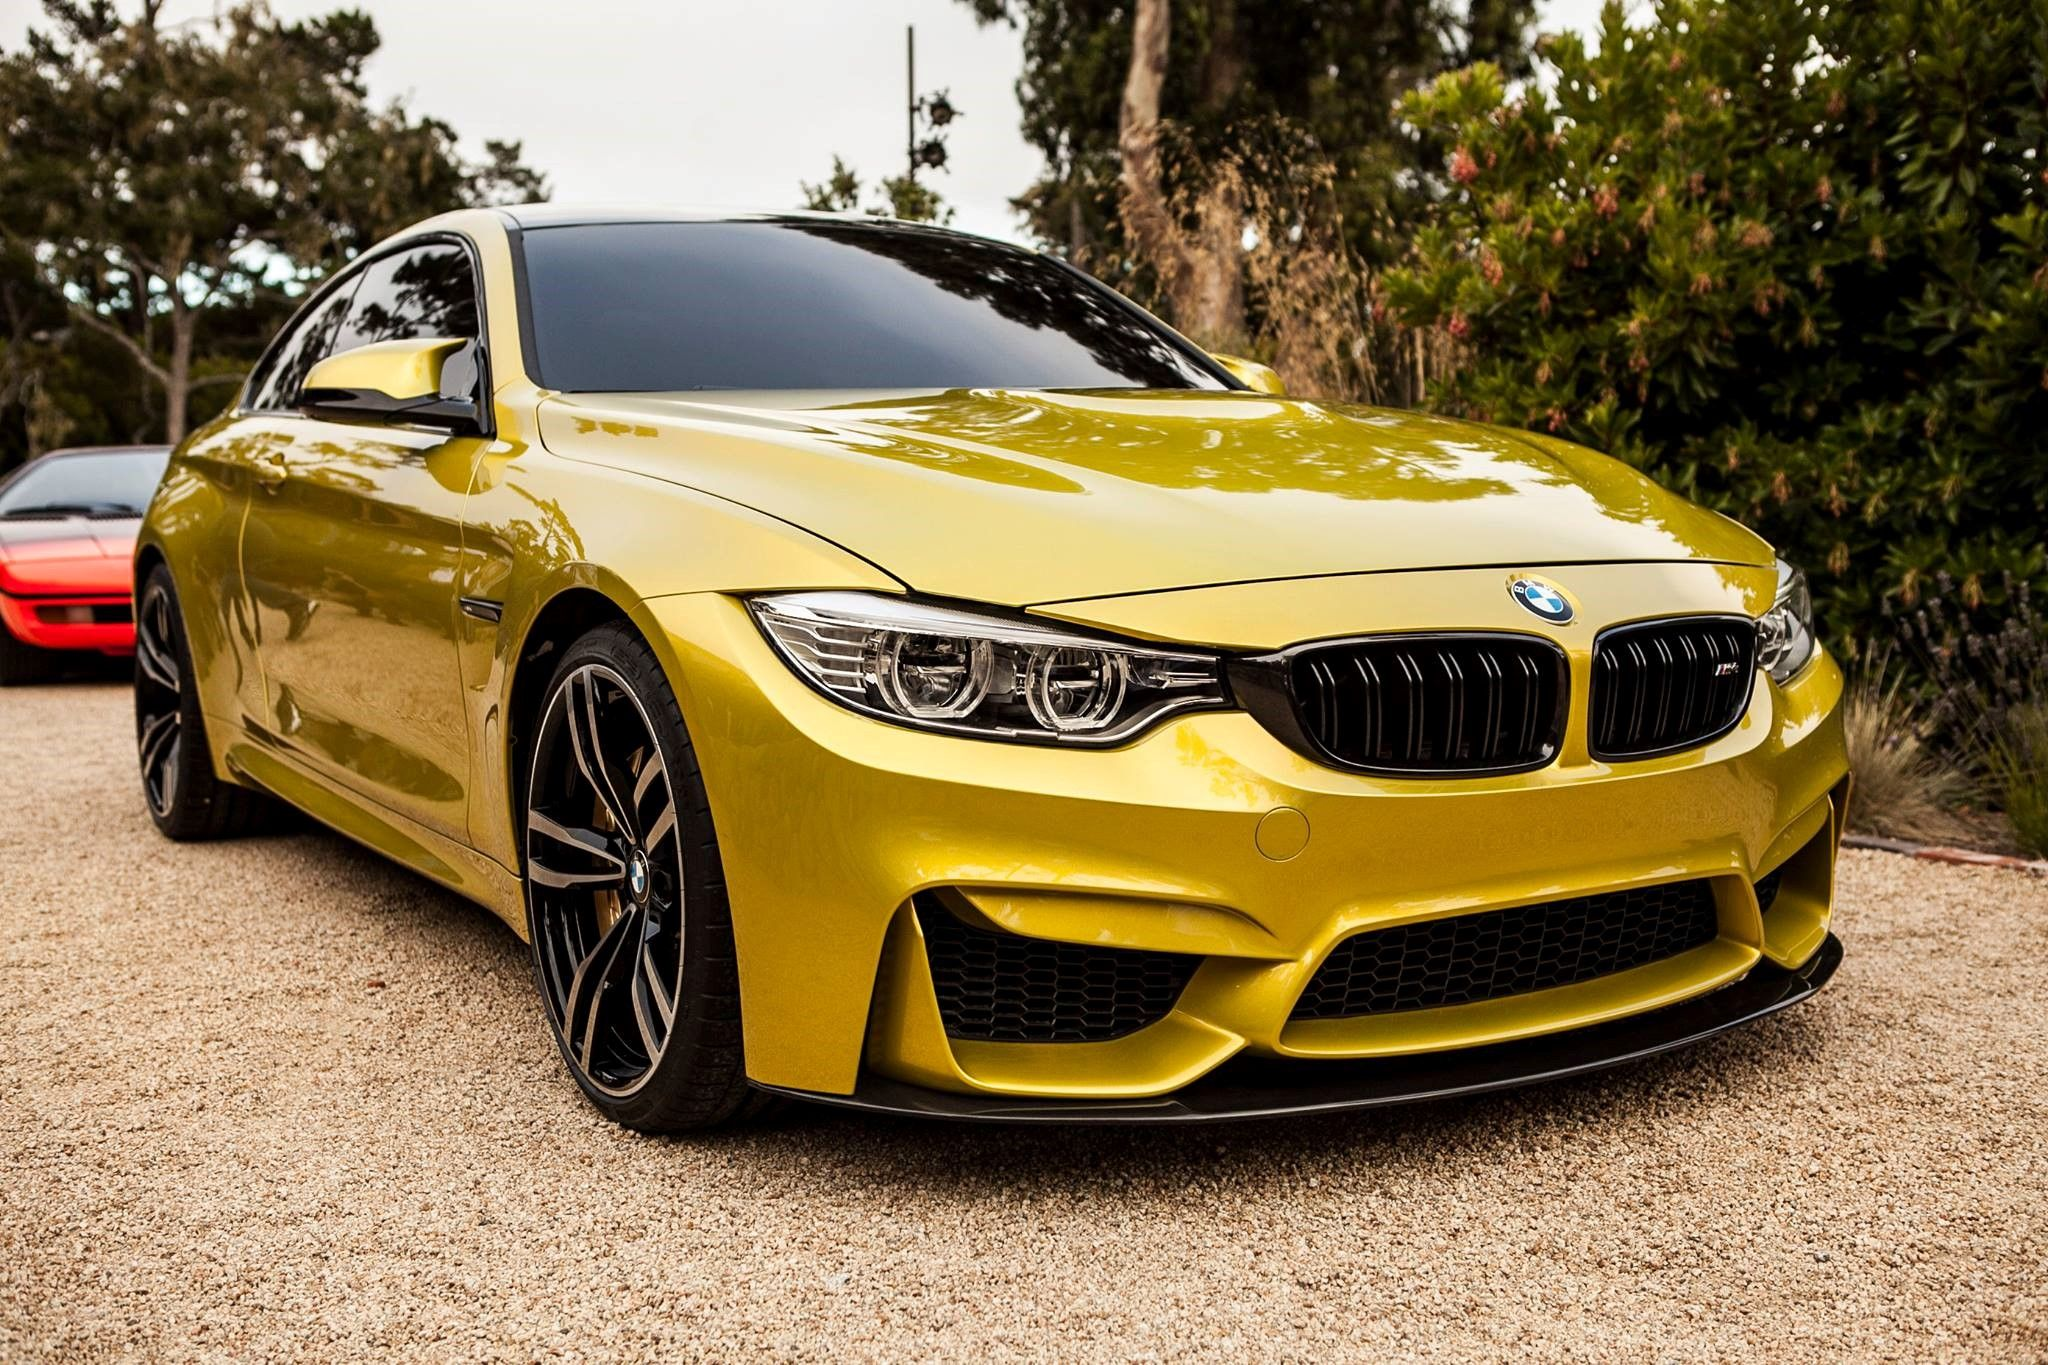 Bmw cars wallpapers free download hd motors latest new images